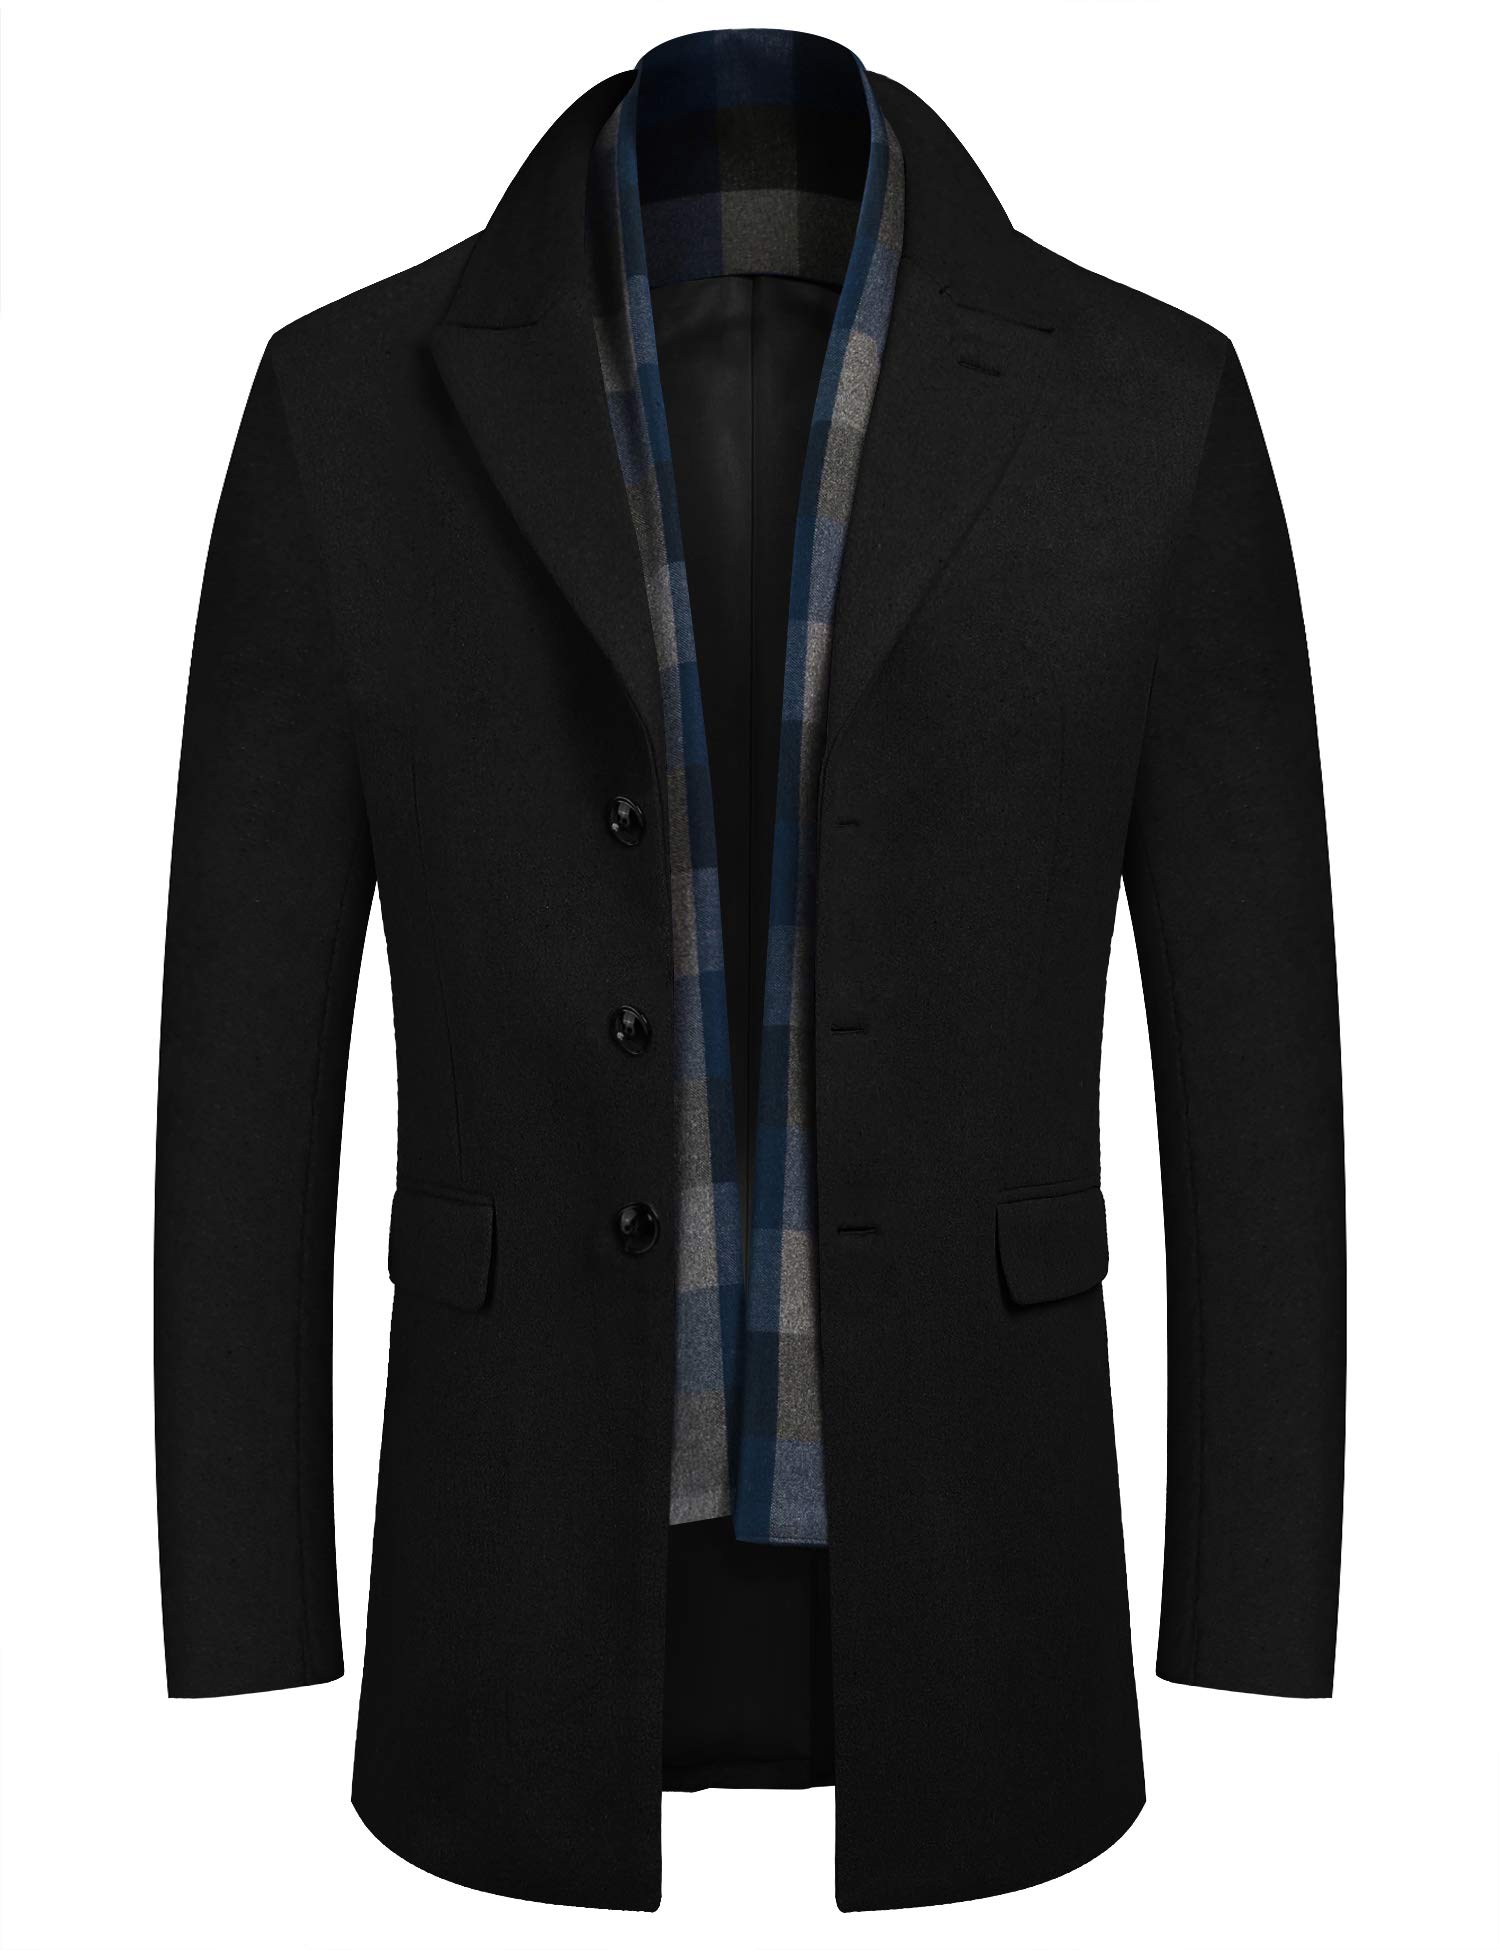 COOFANDY Men's Wool Blend Classic Pea Coat Winter Single Breasted Peacoat Jacket with Removable Scarf (Black XXL) by COOFANDY